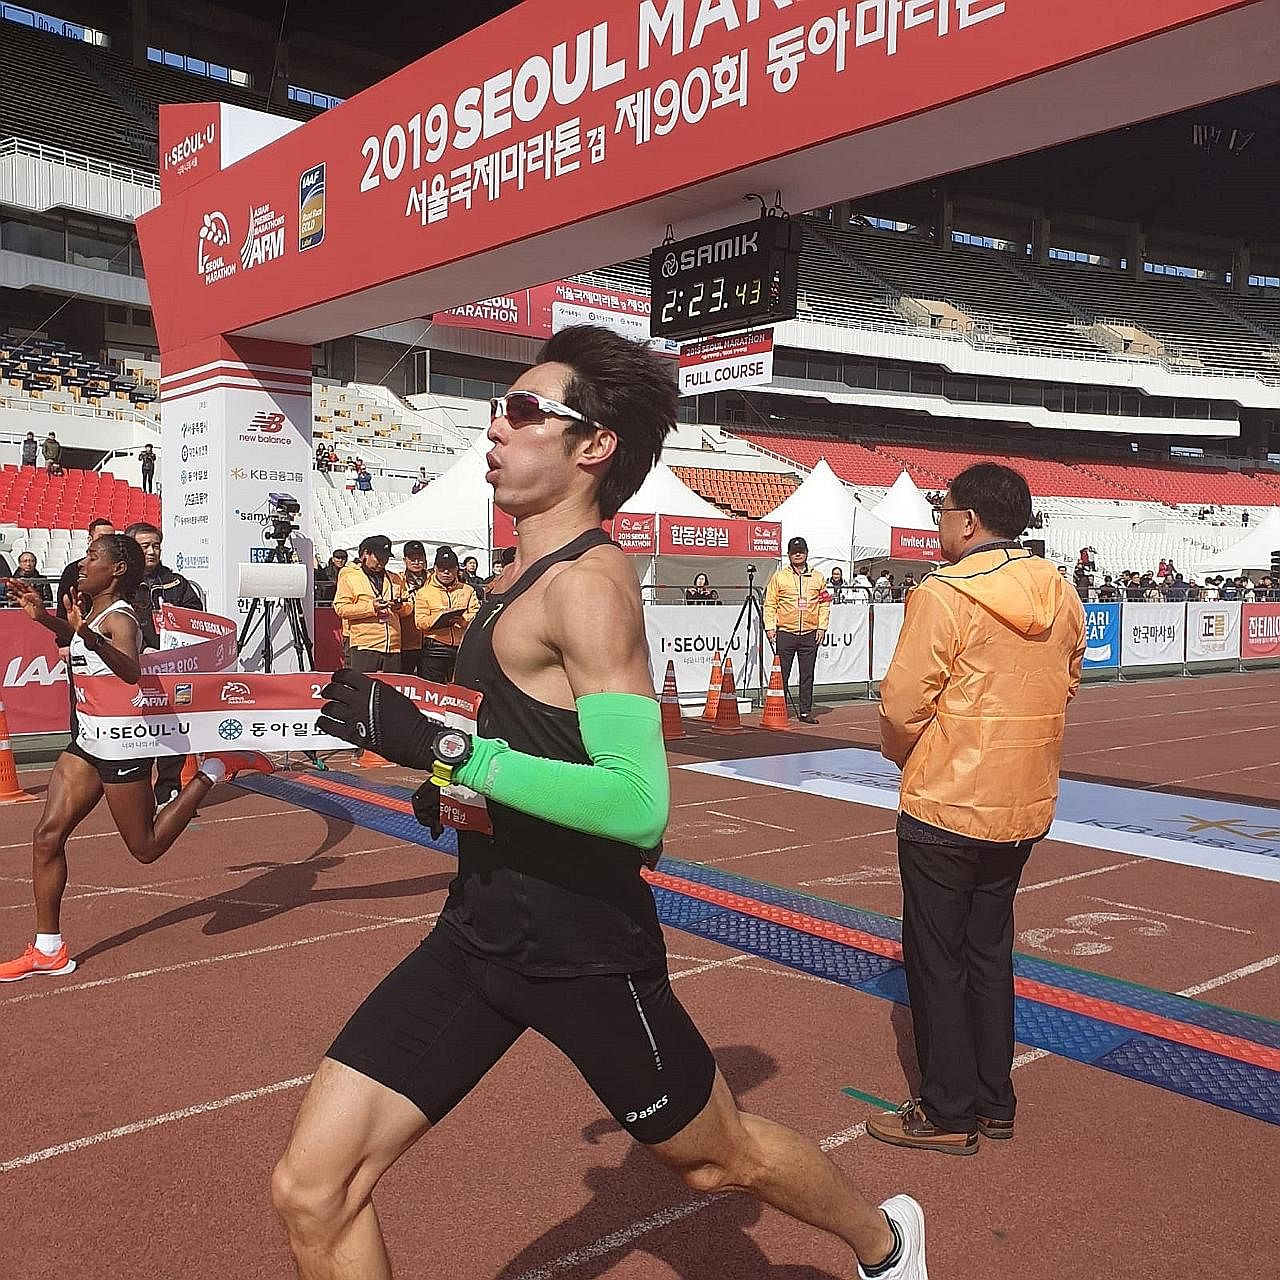 Soh Rui Yong crossing the finishing line in a national mark of 2hr 23min 42sec at the Seoul Marathon yesterday. He now holds the national records in the marathon, the half marathon and the 10,000m.